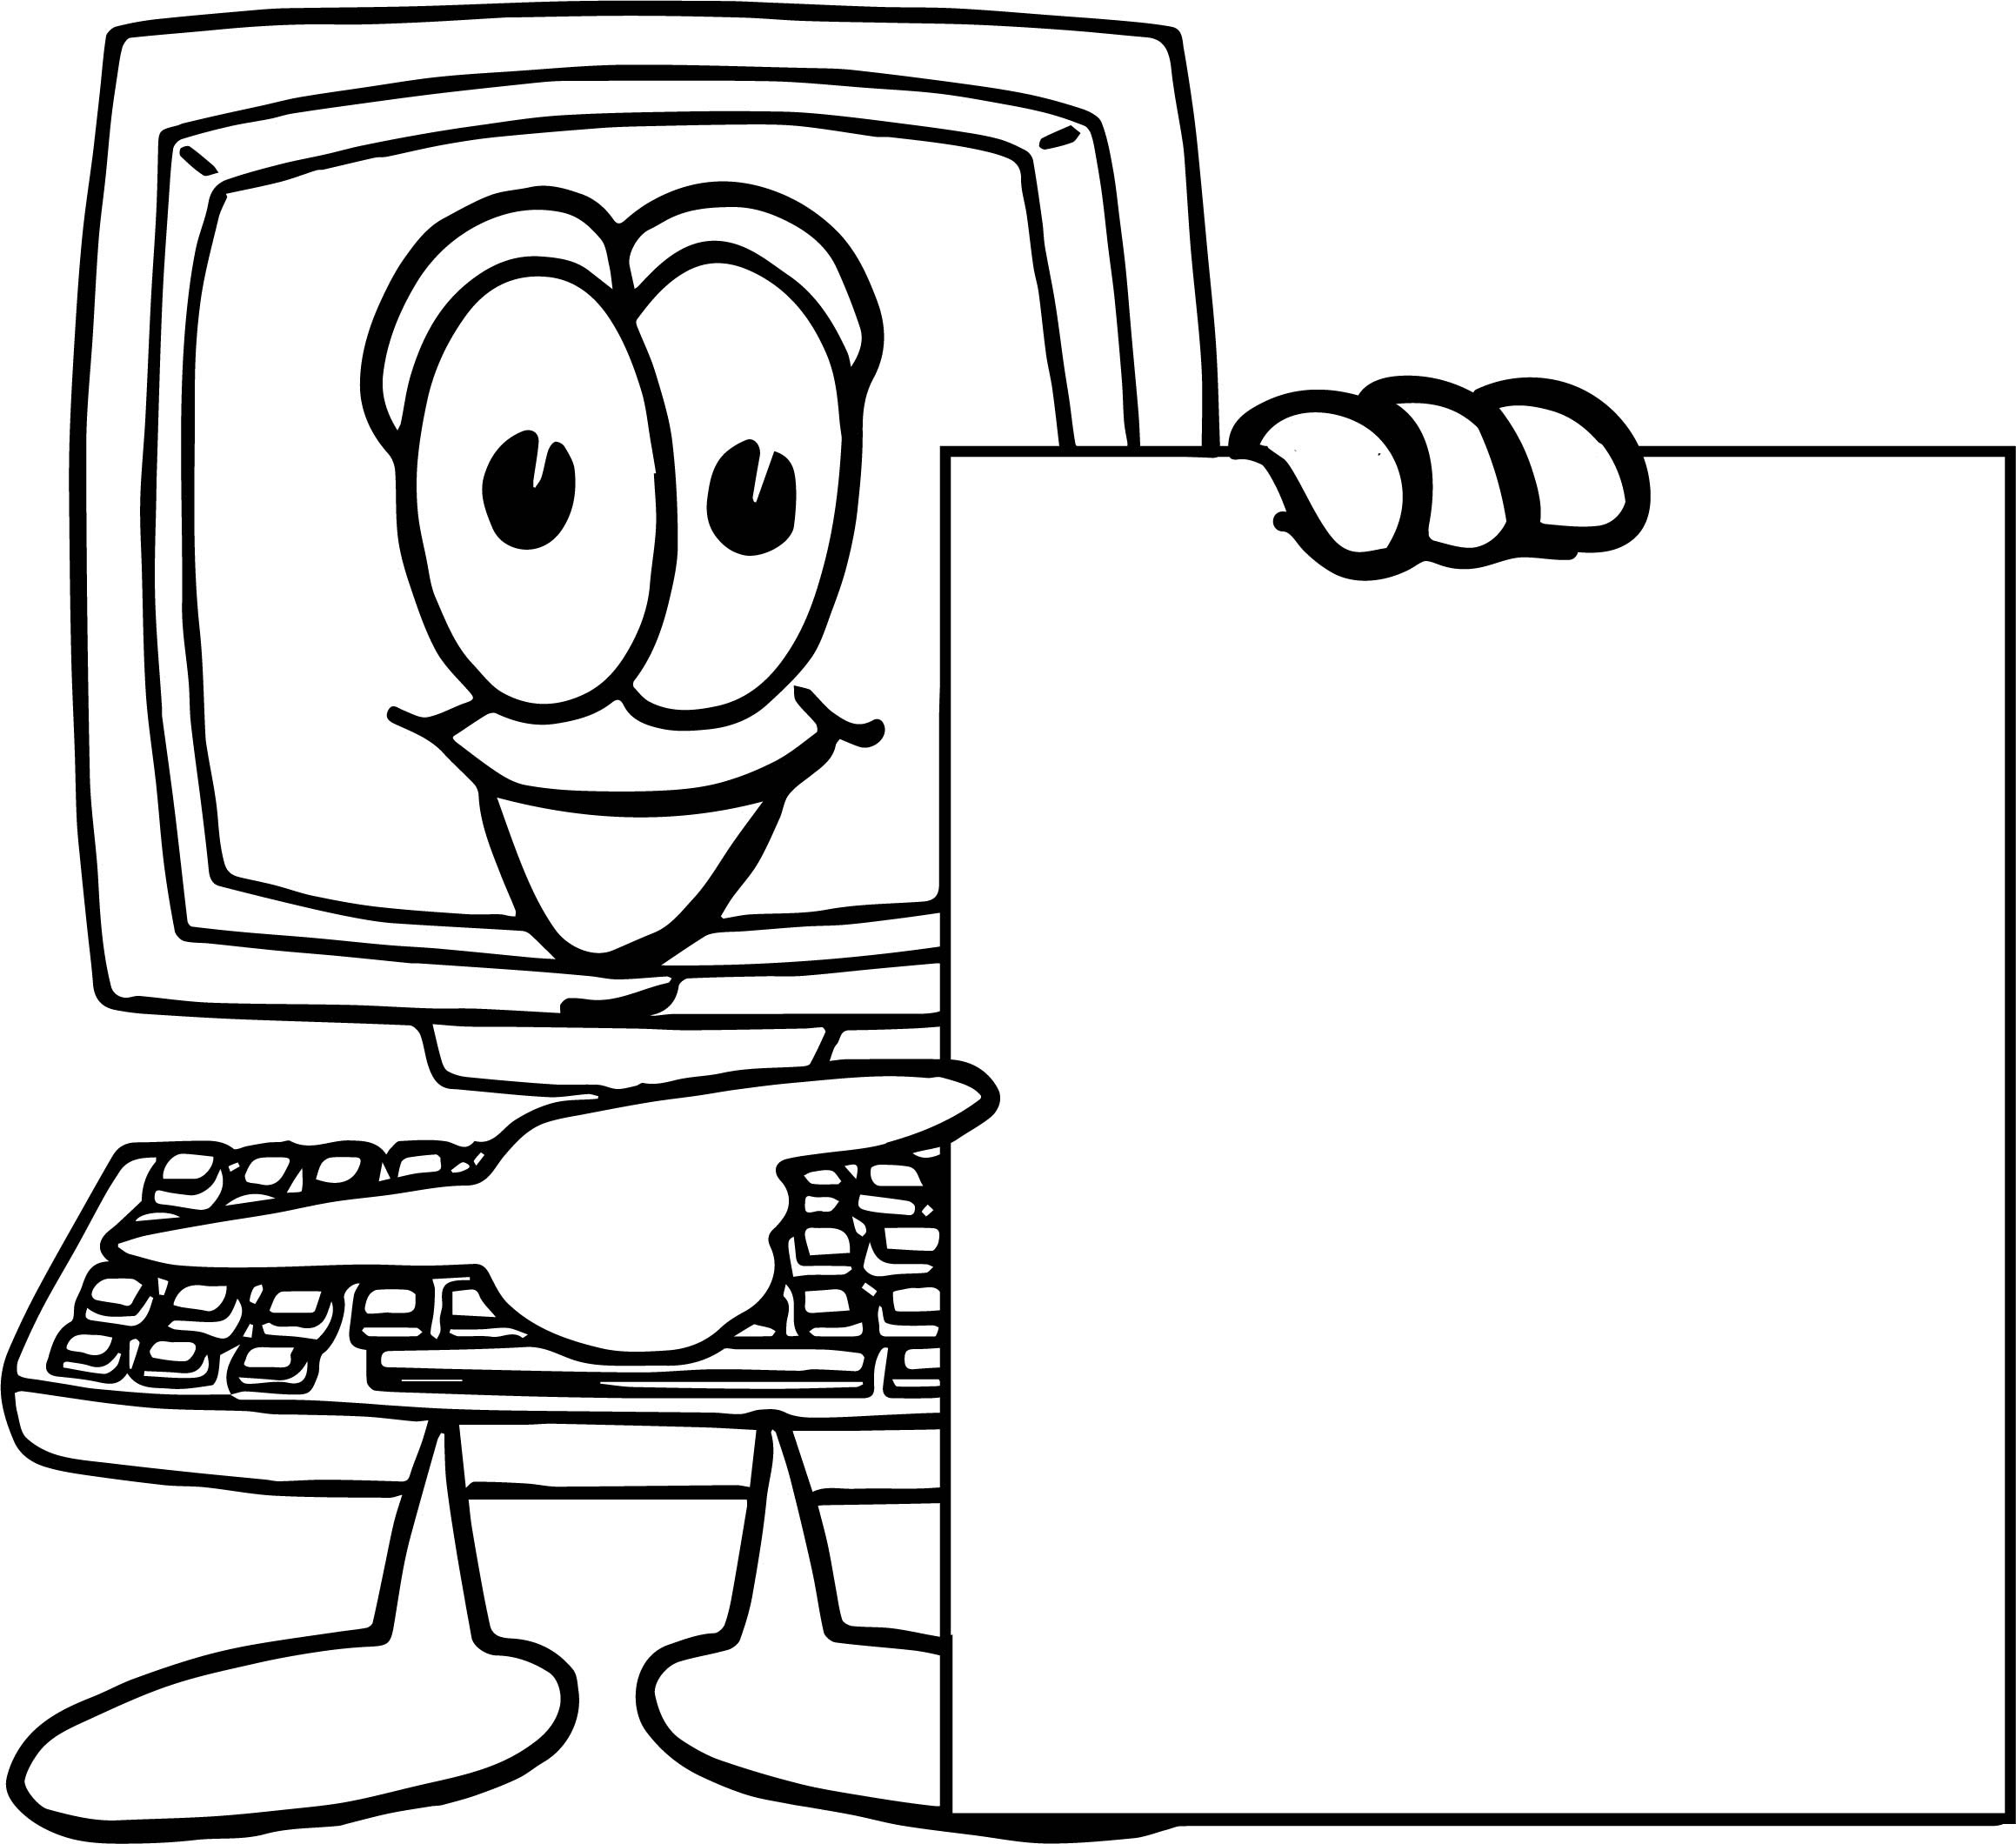 Playing Computer Games Look Blank Page Coloring Page ...